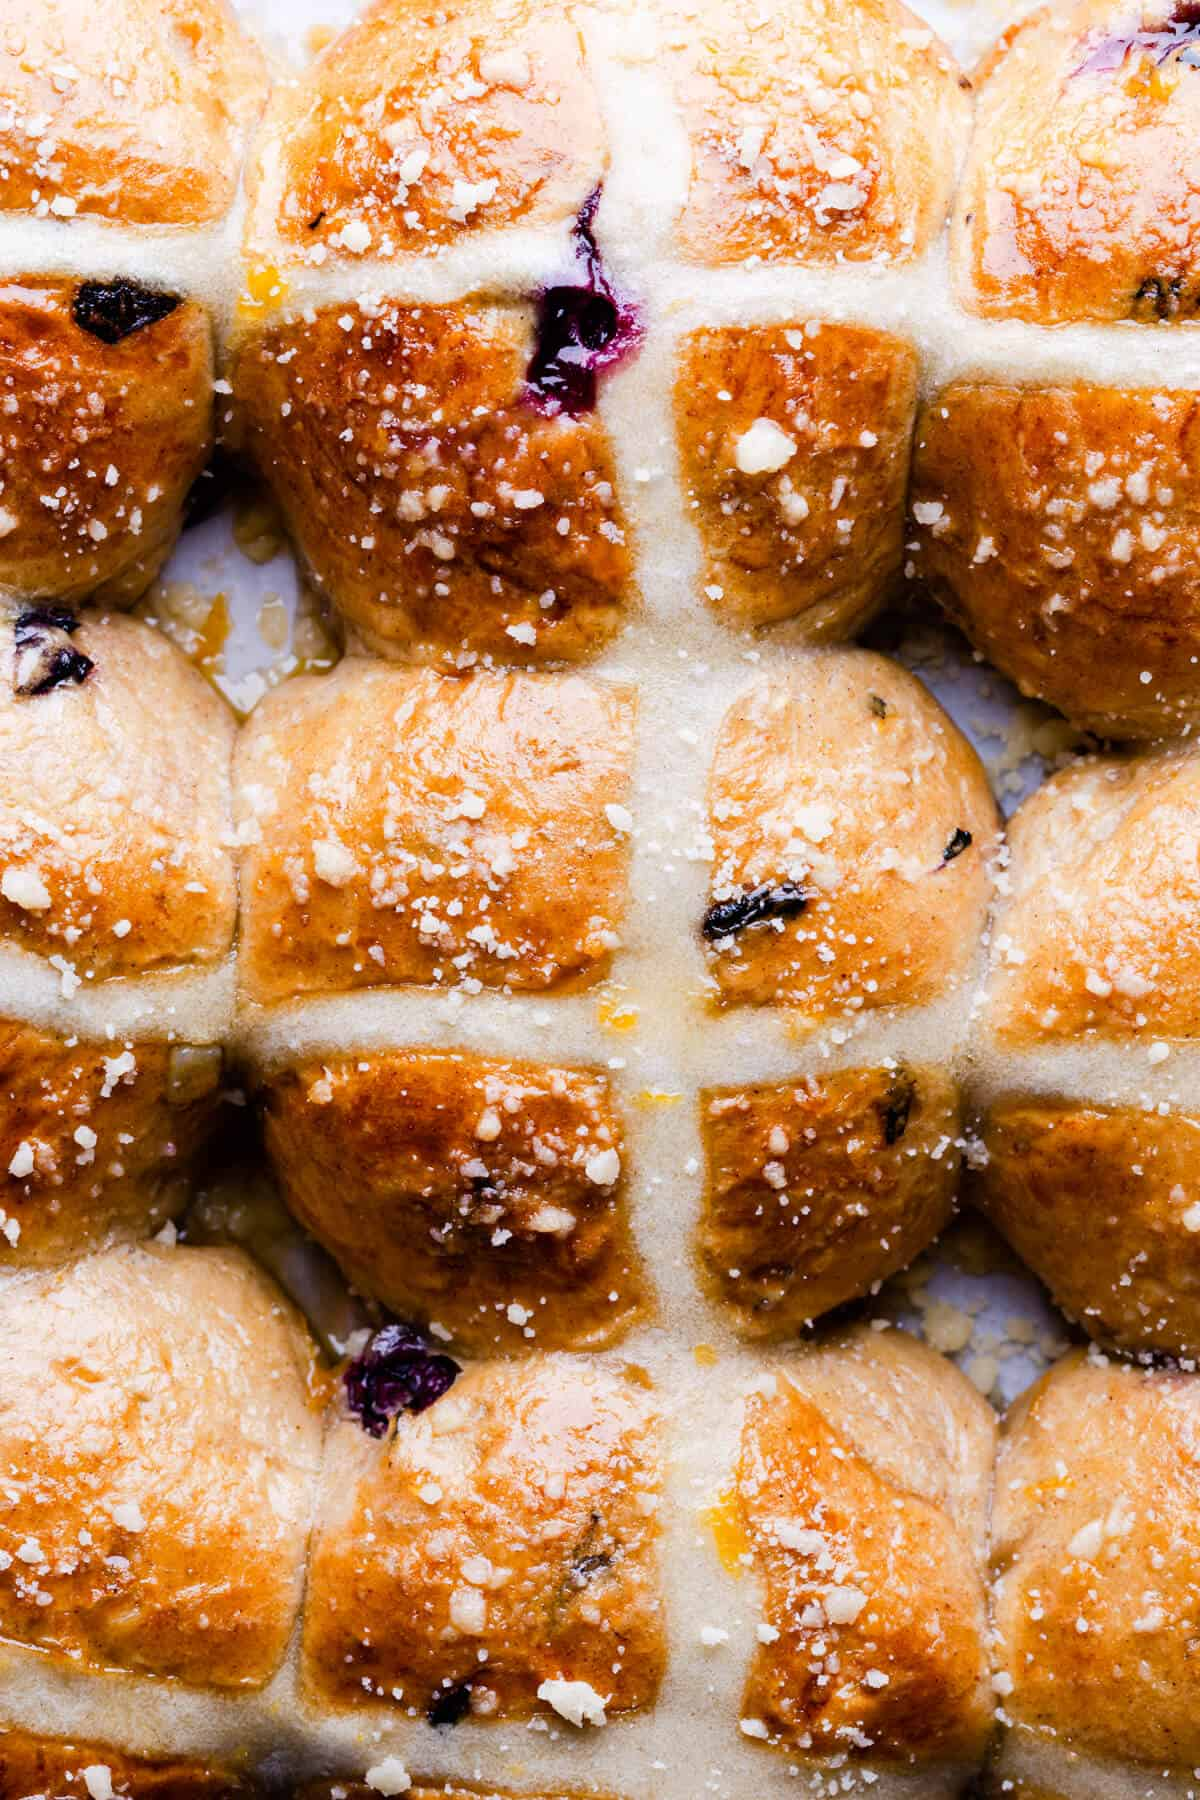 top view close up of buns with blueberries and cross pattern